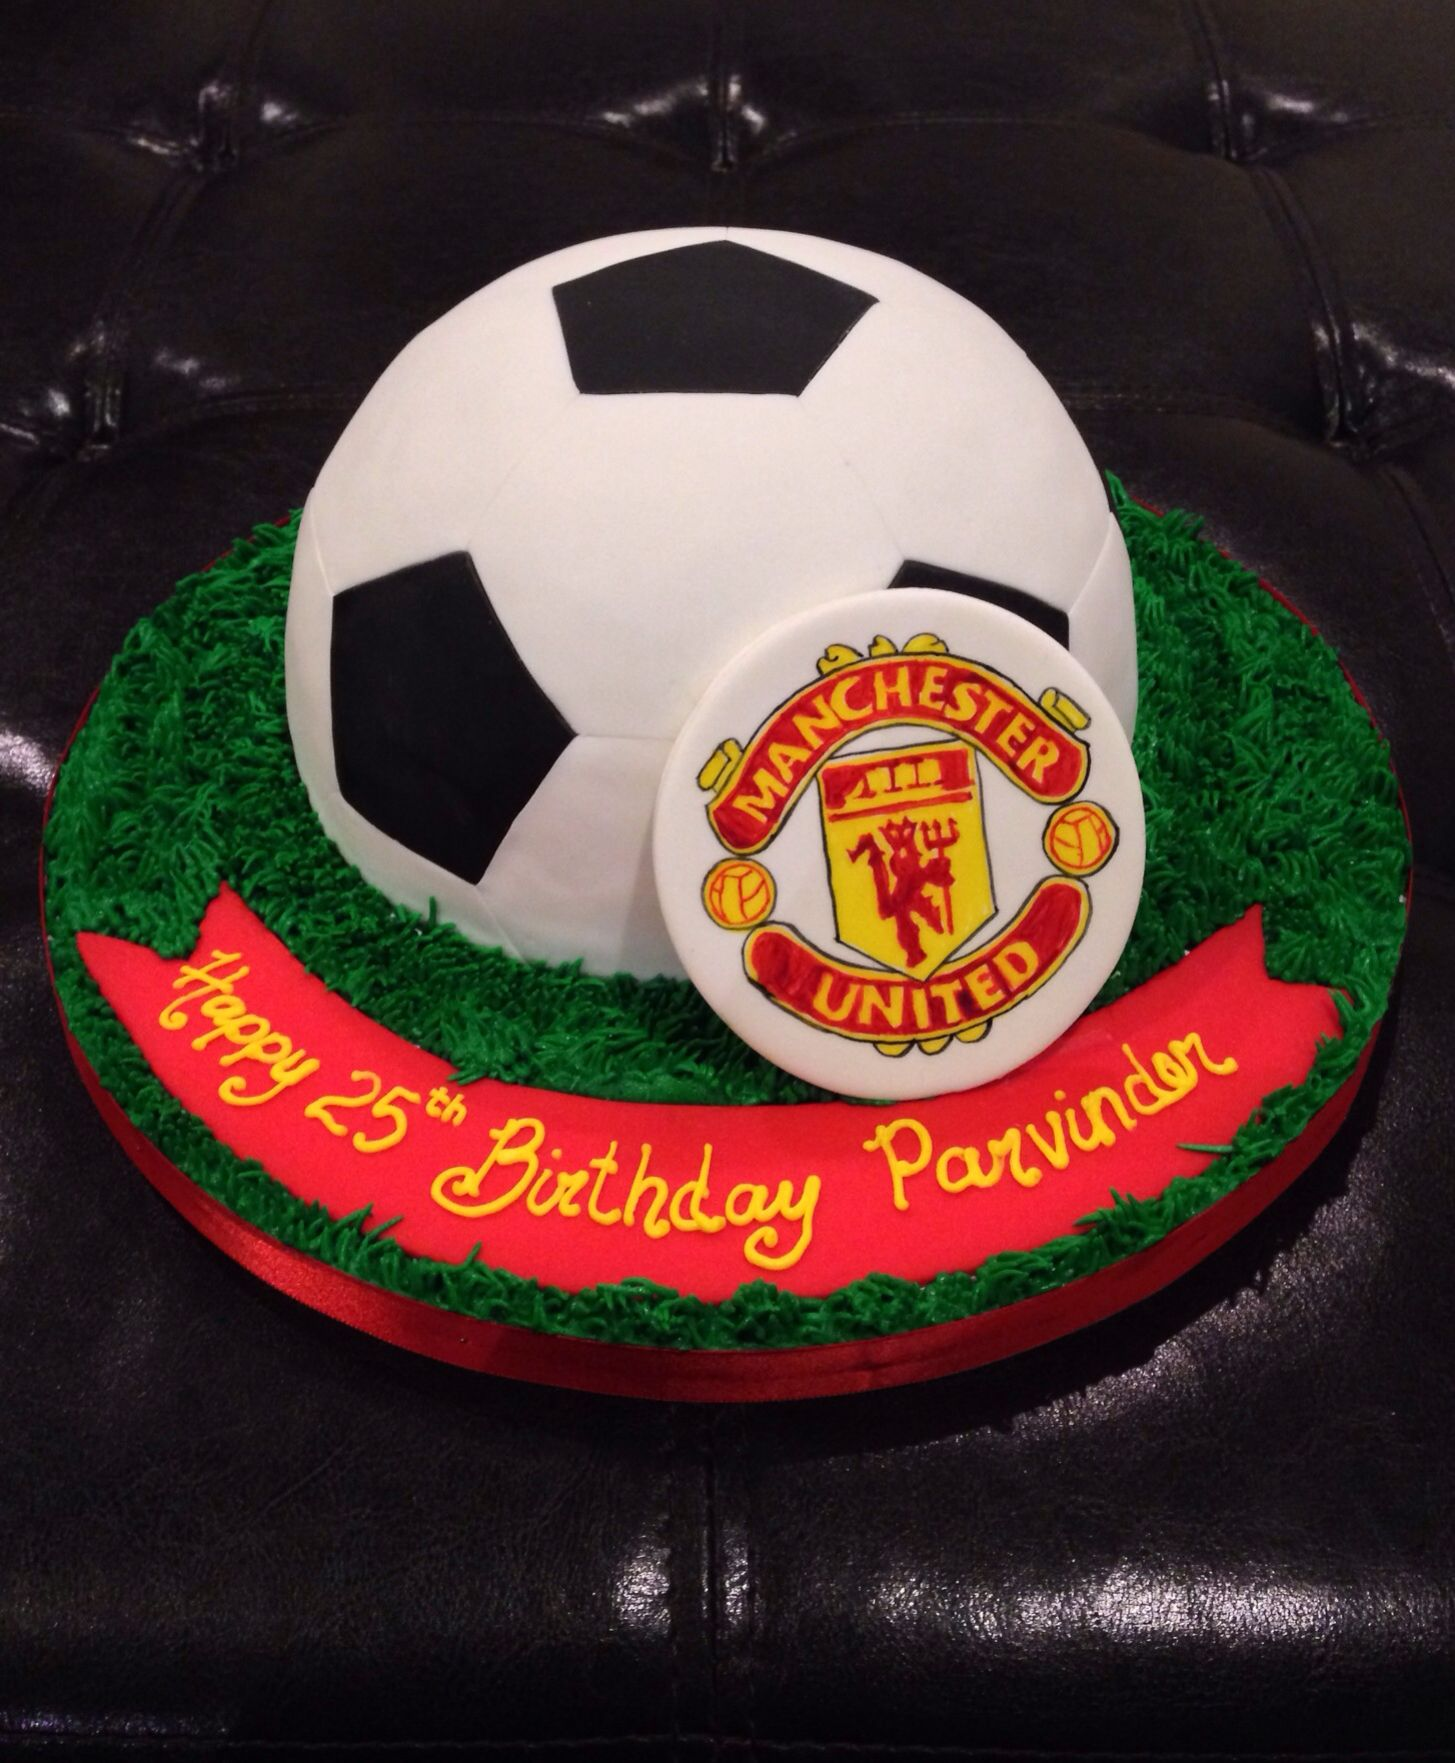 Manchester United Soccer Ball Cake Chocolate Mud Cake With Oreo Italian Meringue Buttercream Diana S Dreamcakes Soccer Ball Cake Chocolate Mud Cake Cake